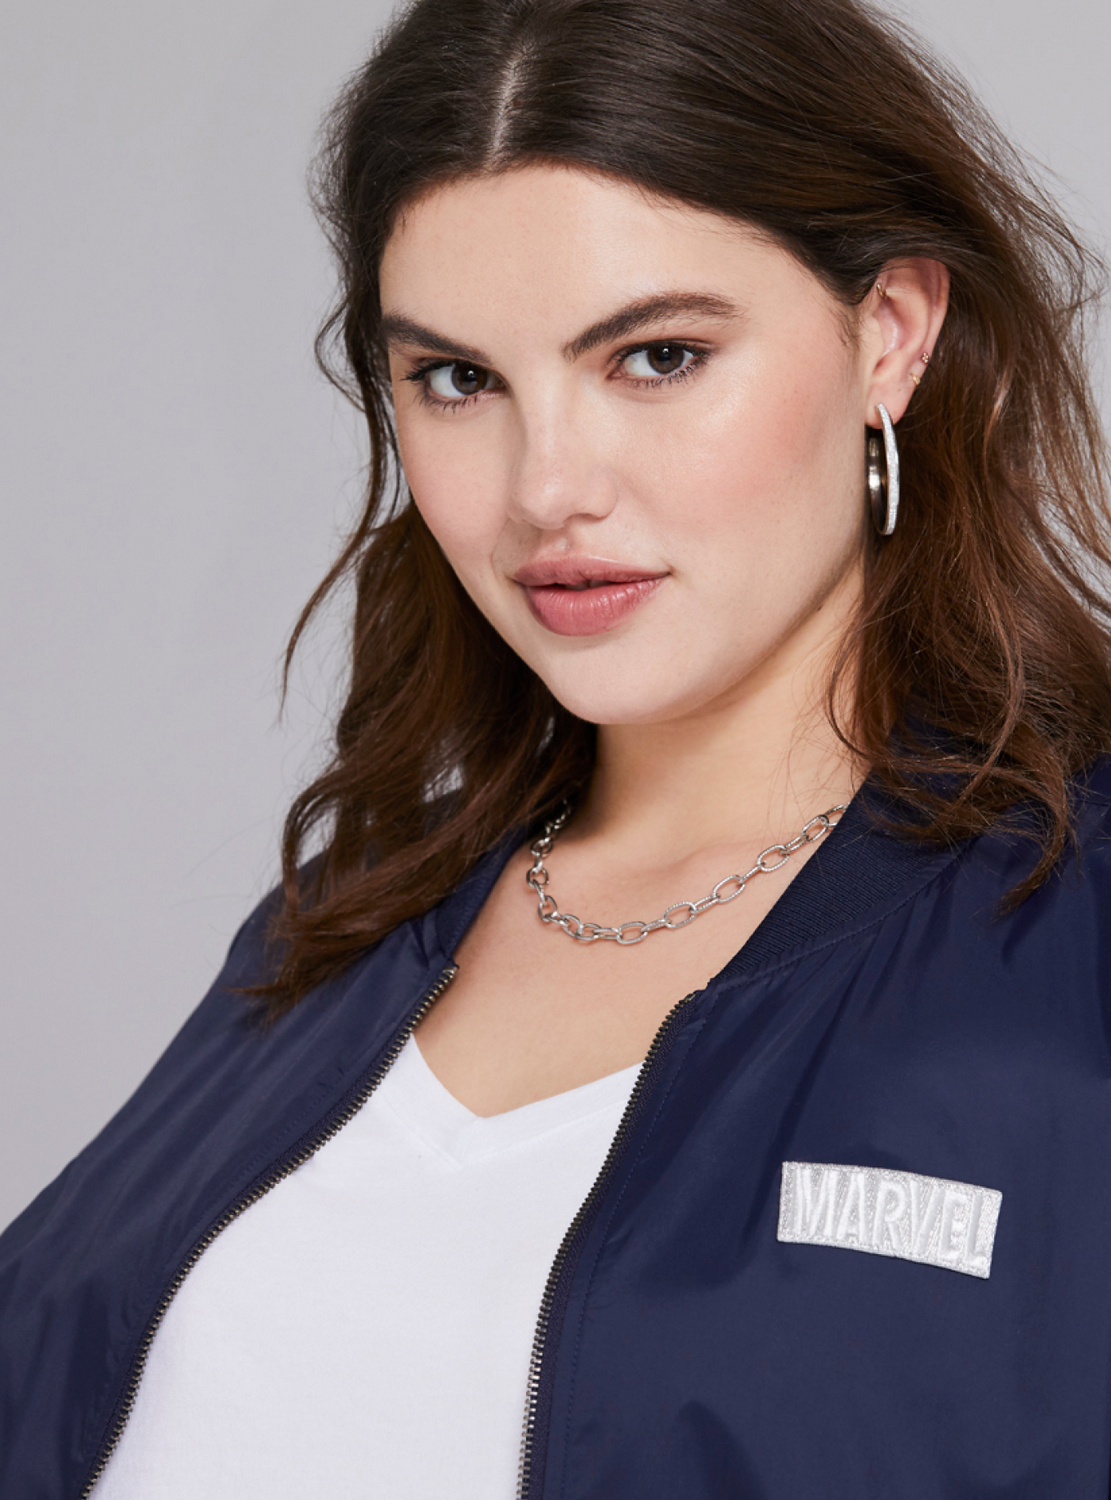 Torrid Avengers Endgame Plus Size Collection with Her Universe